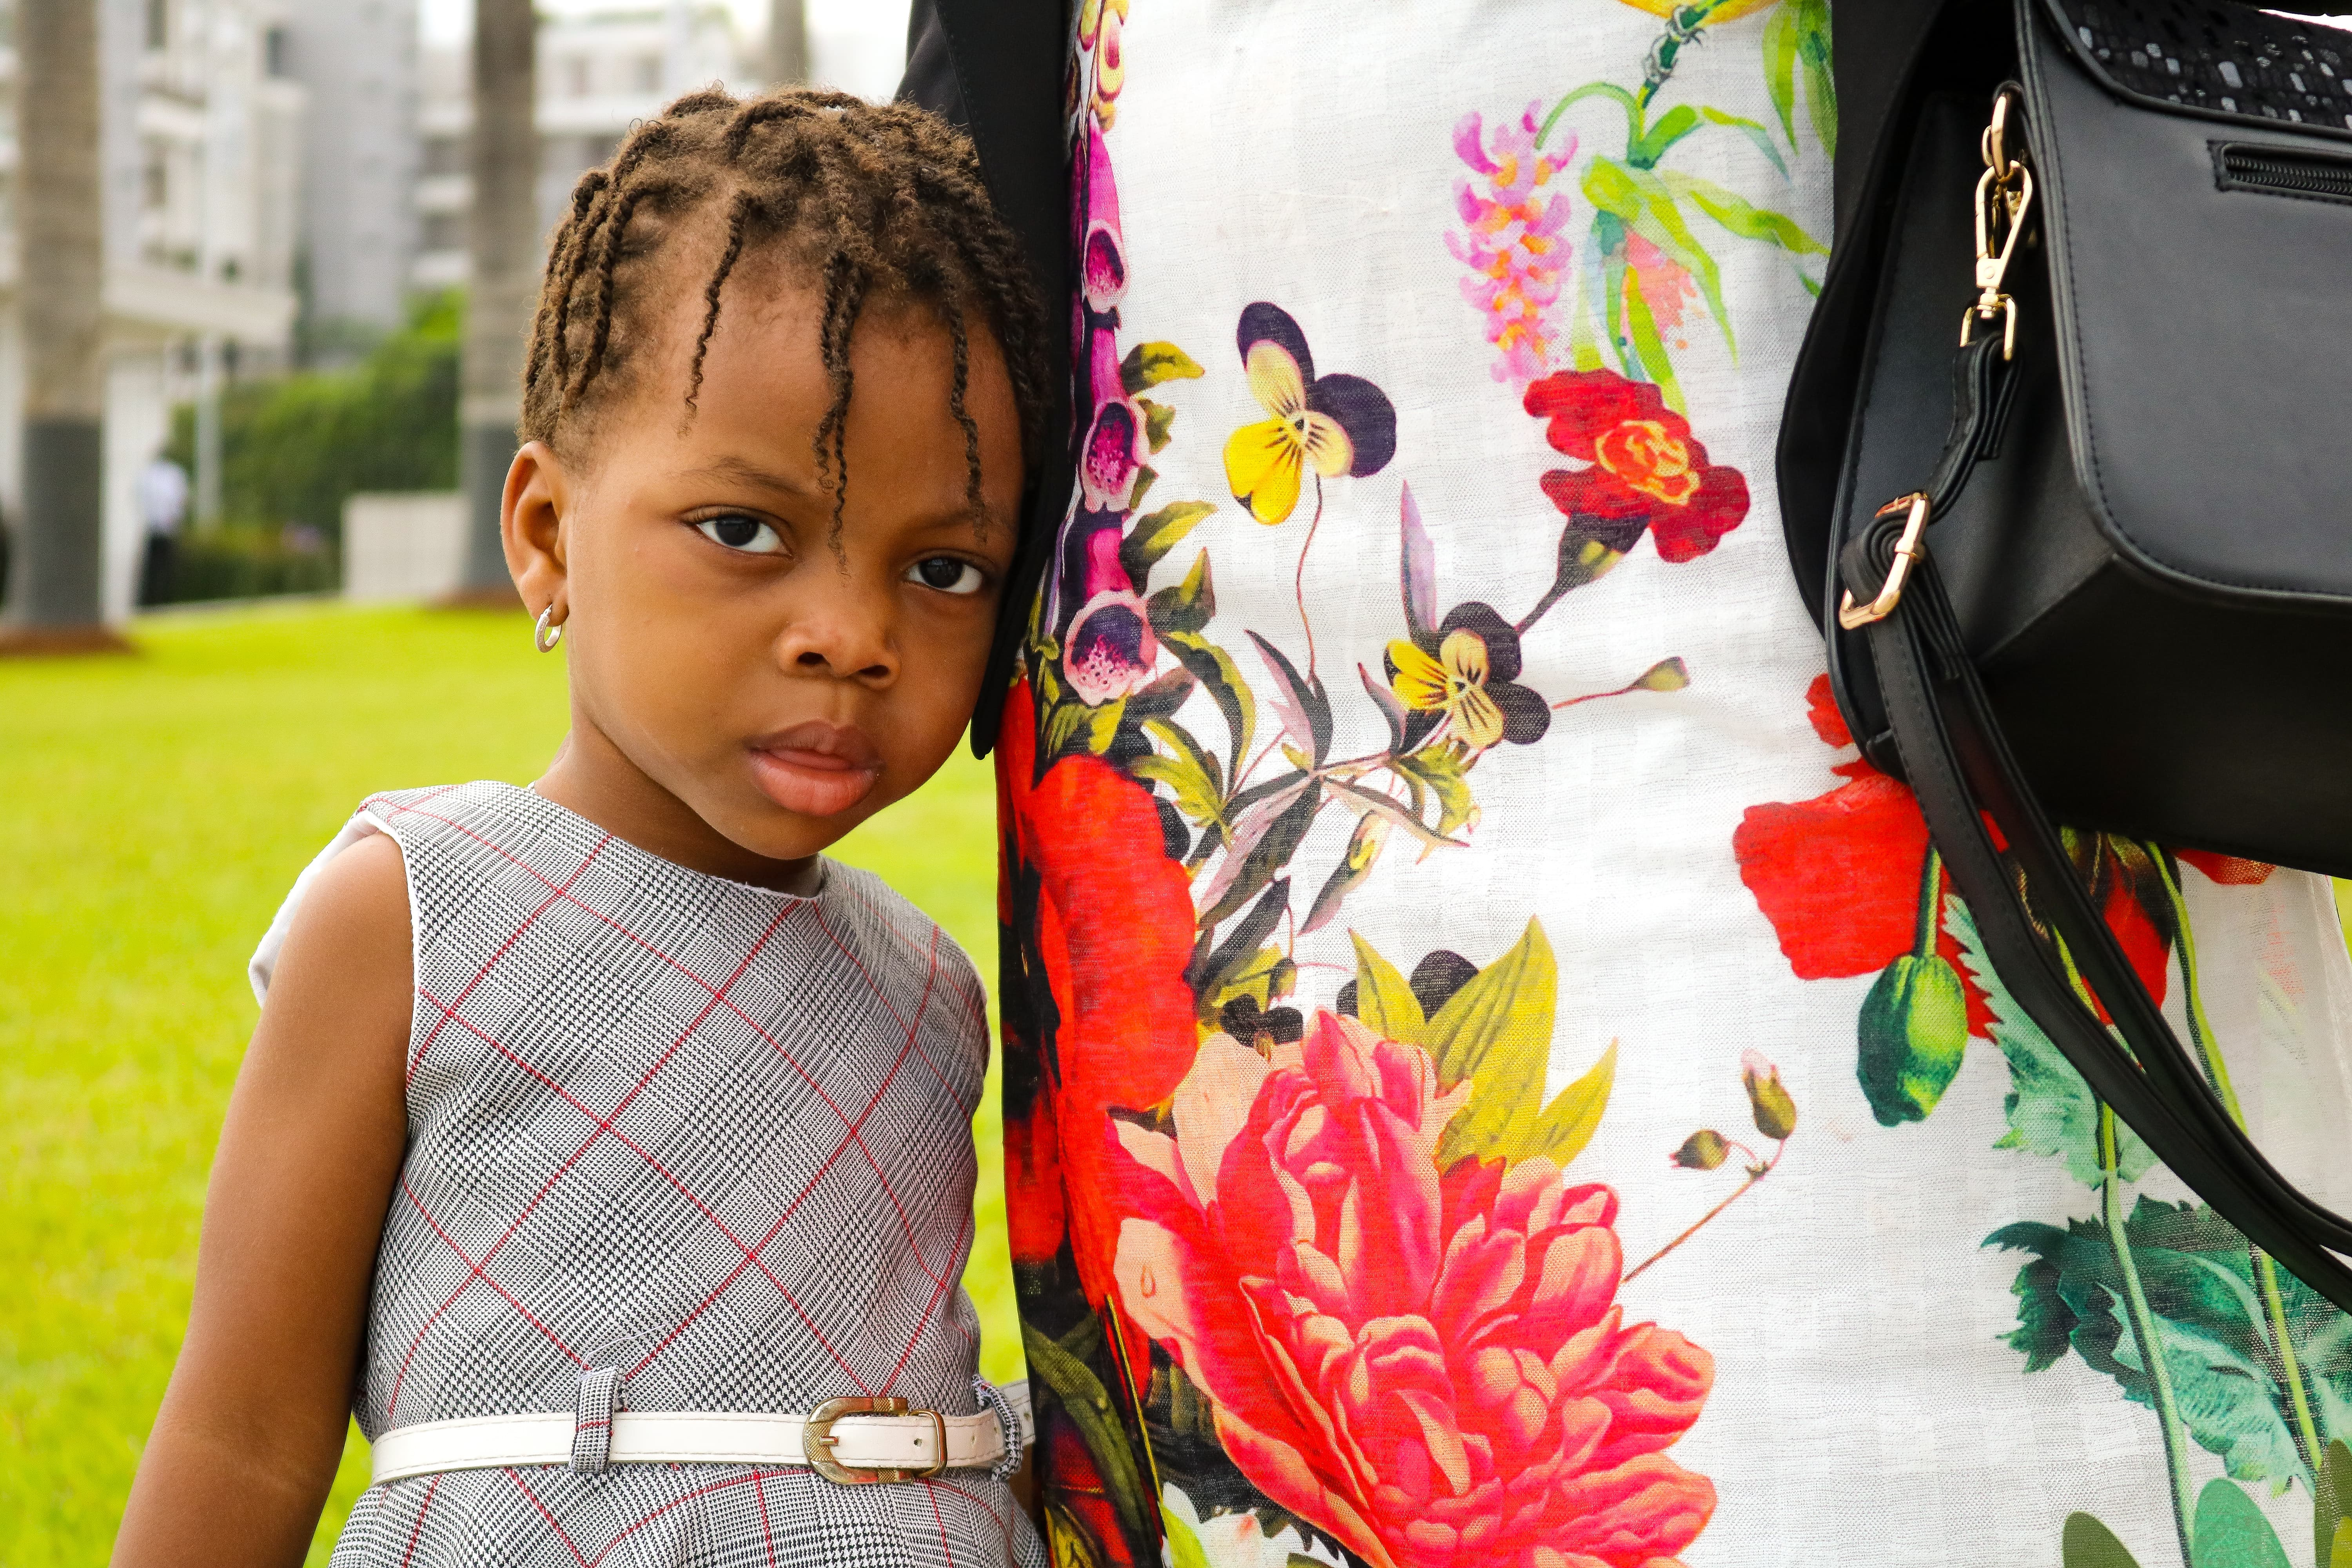 A young Latter-day Saint child attends the cornerstone ceremony in conjunction with the dedication of the Kinshasa Democratic Republic of the Congo Temple on Sunday, April 14, 2019.